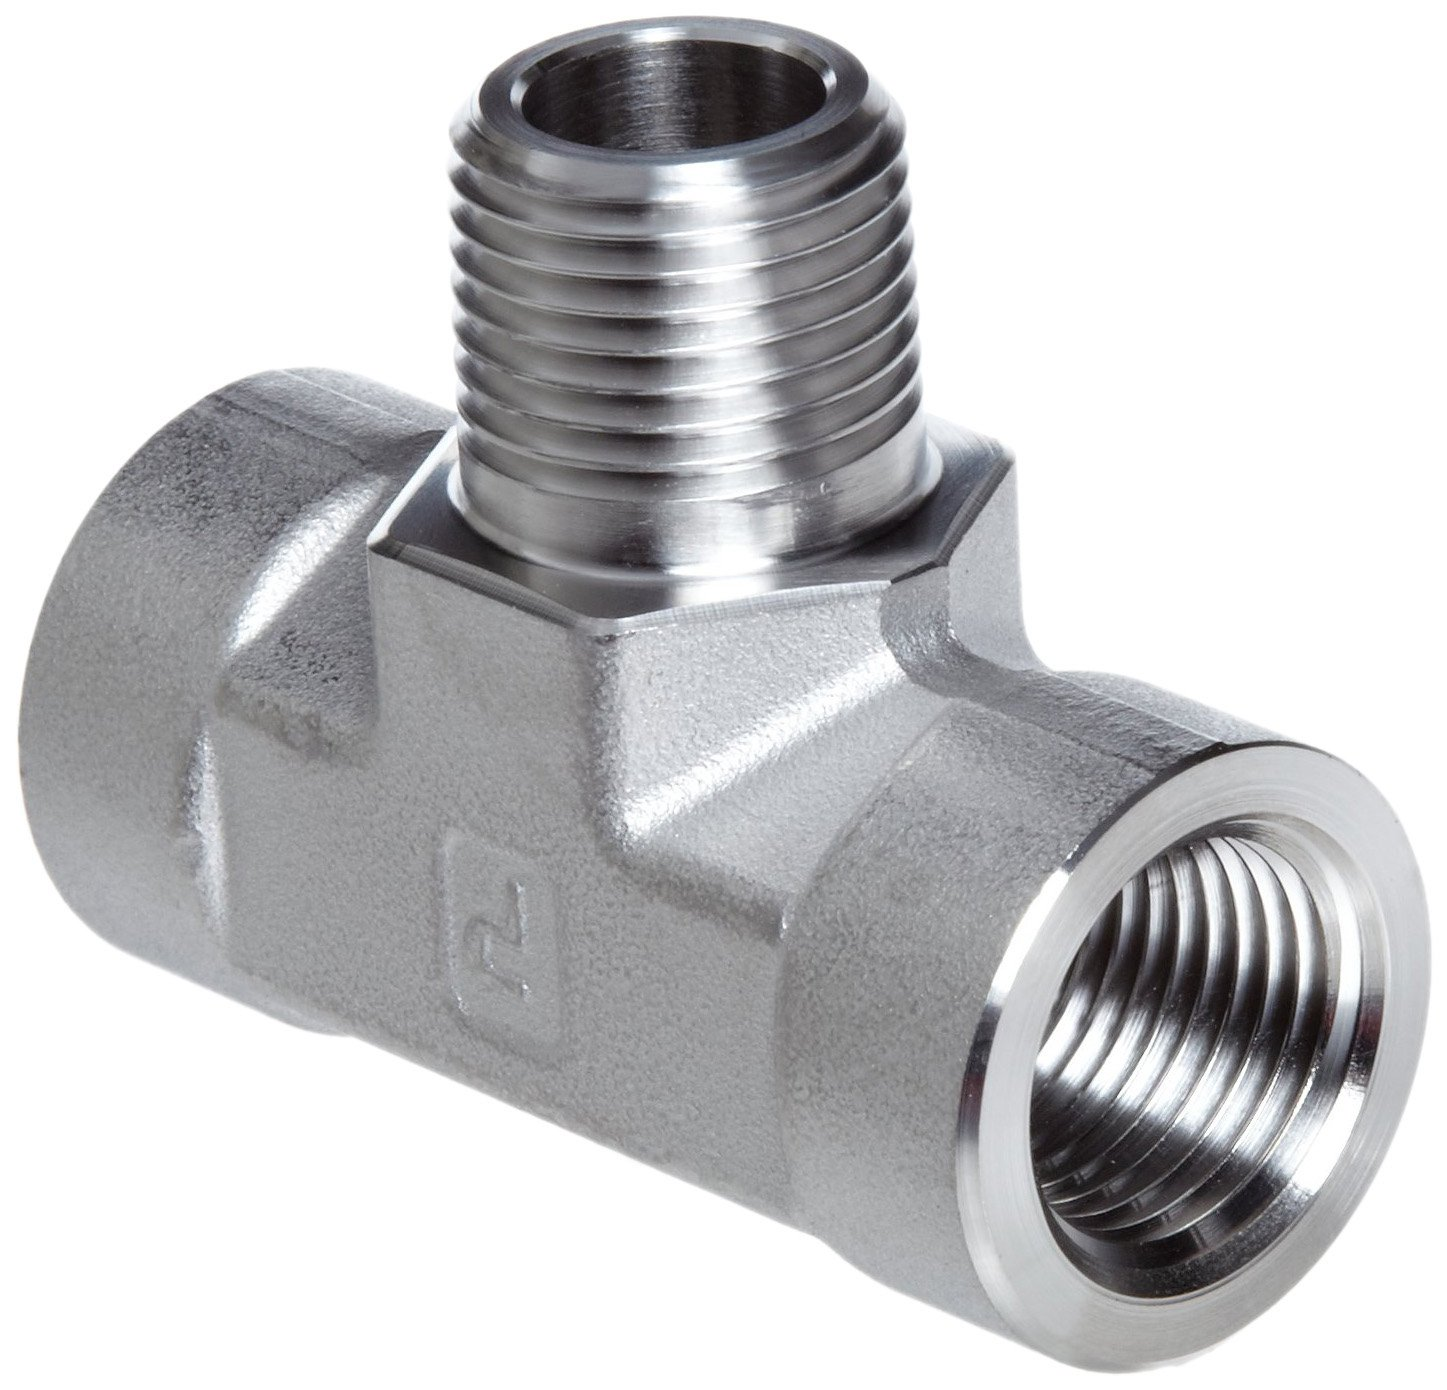 Parker Stainless Steel 316 Pipe Fitting, Branch Tee, 1/4'' NPT Female x 1/4'' NPT Male x 1/4'' NPT Female